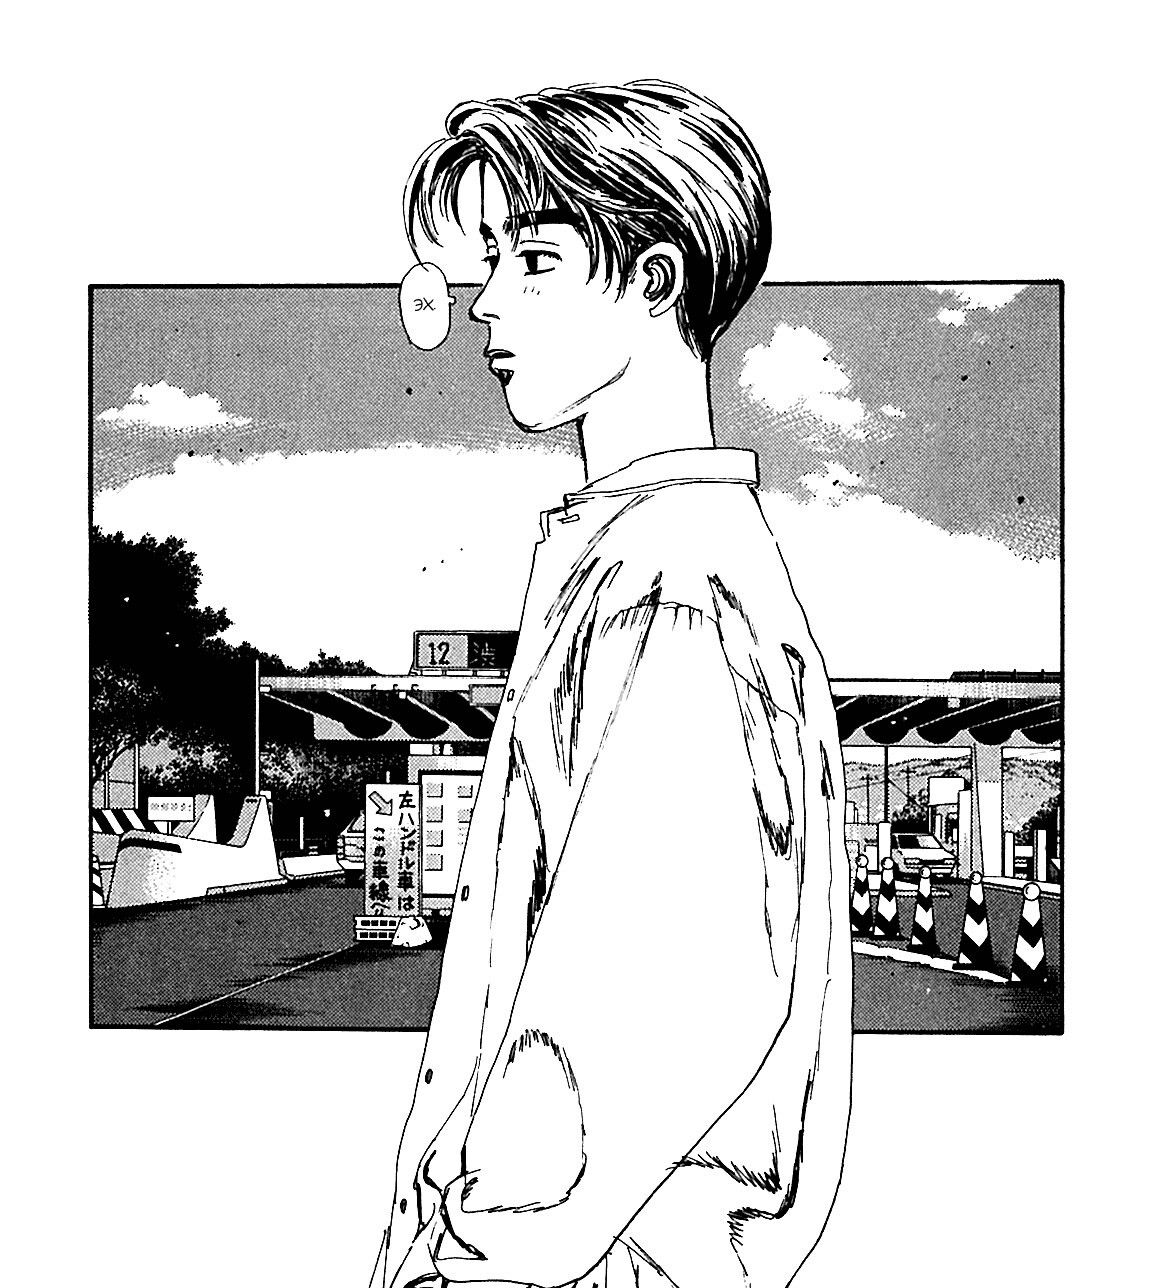 Pin by Charles Garnaat on Initial D Initial d, Aesthetic